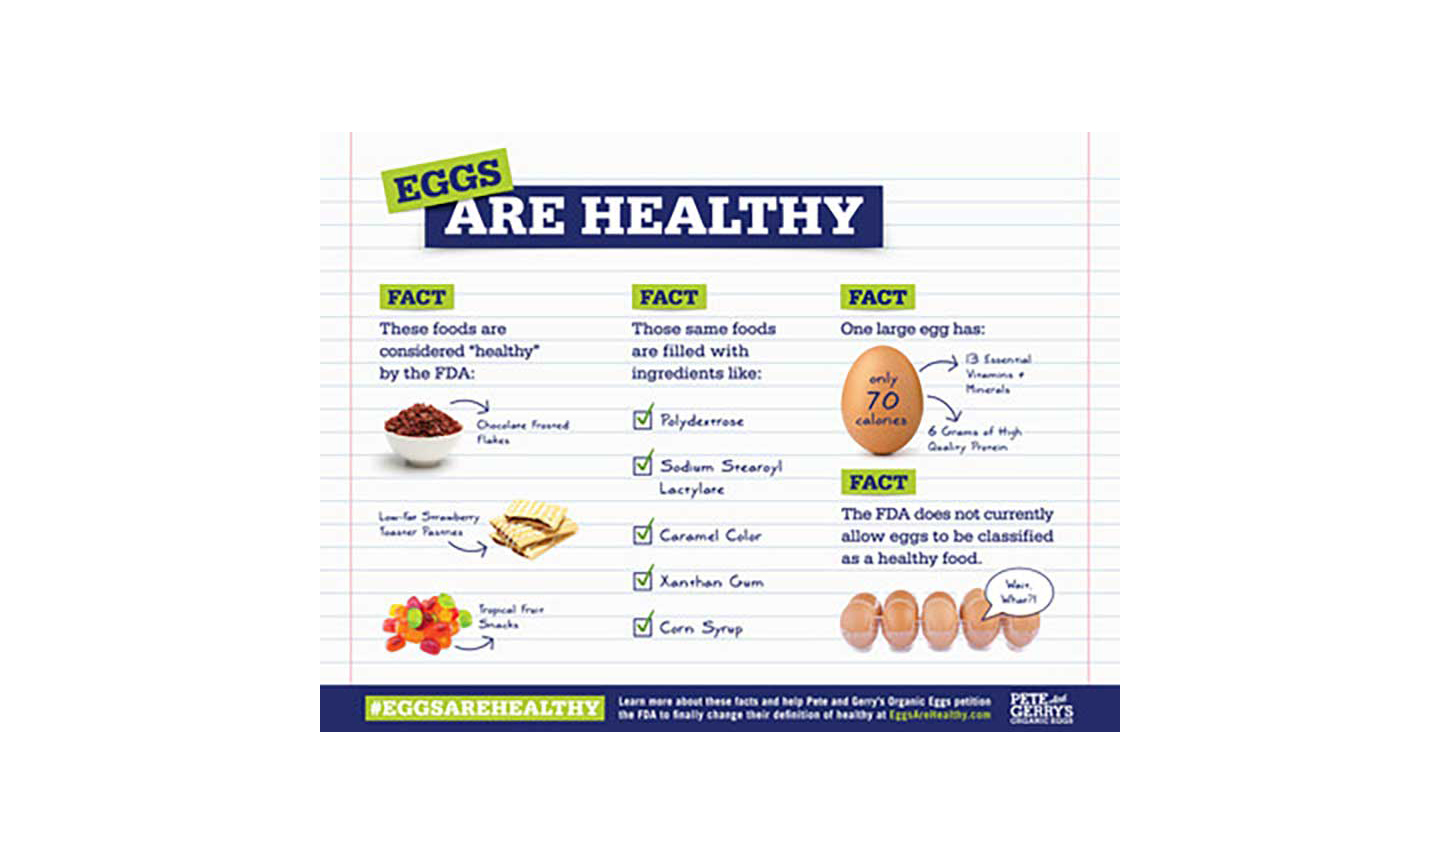 Pete and Gerry's healthy eggs infographic